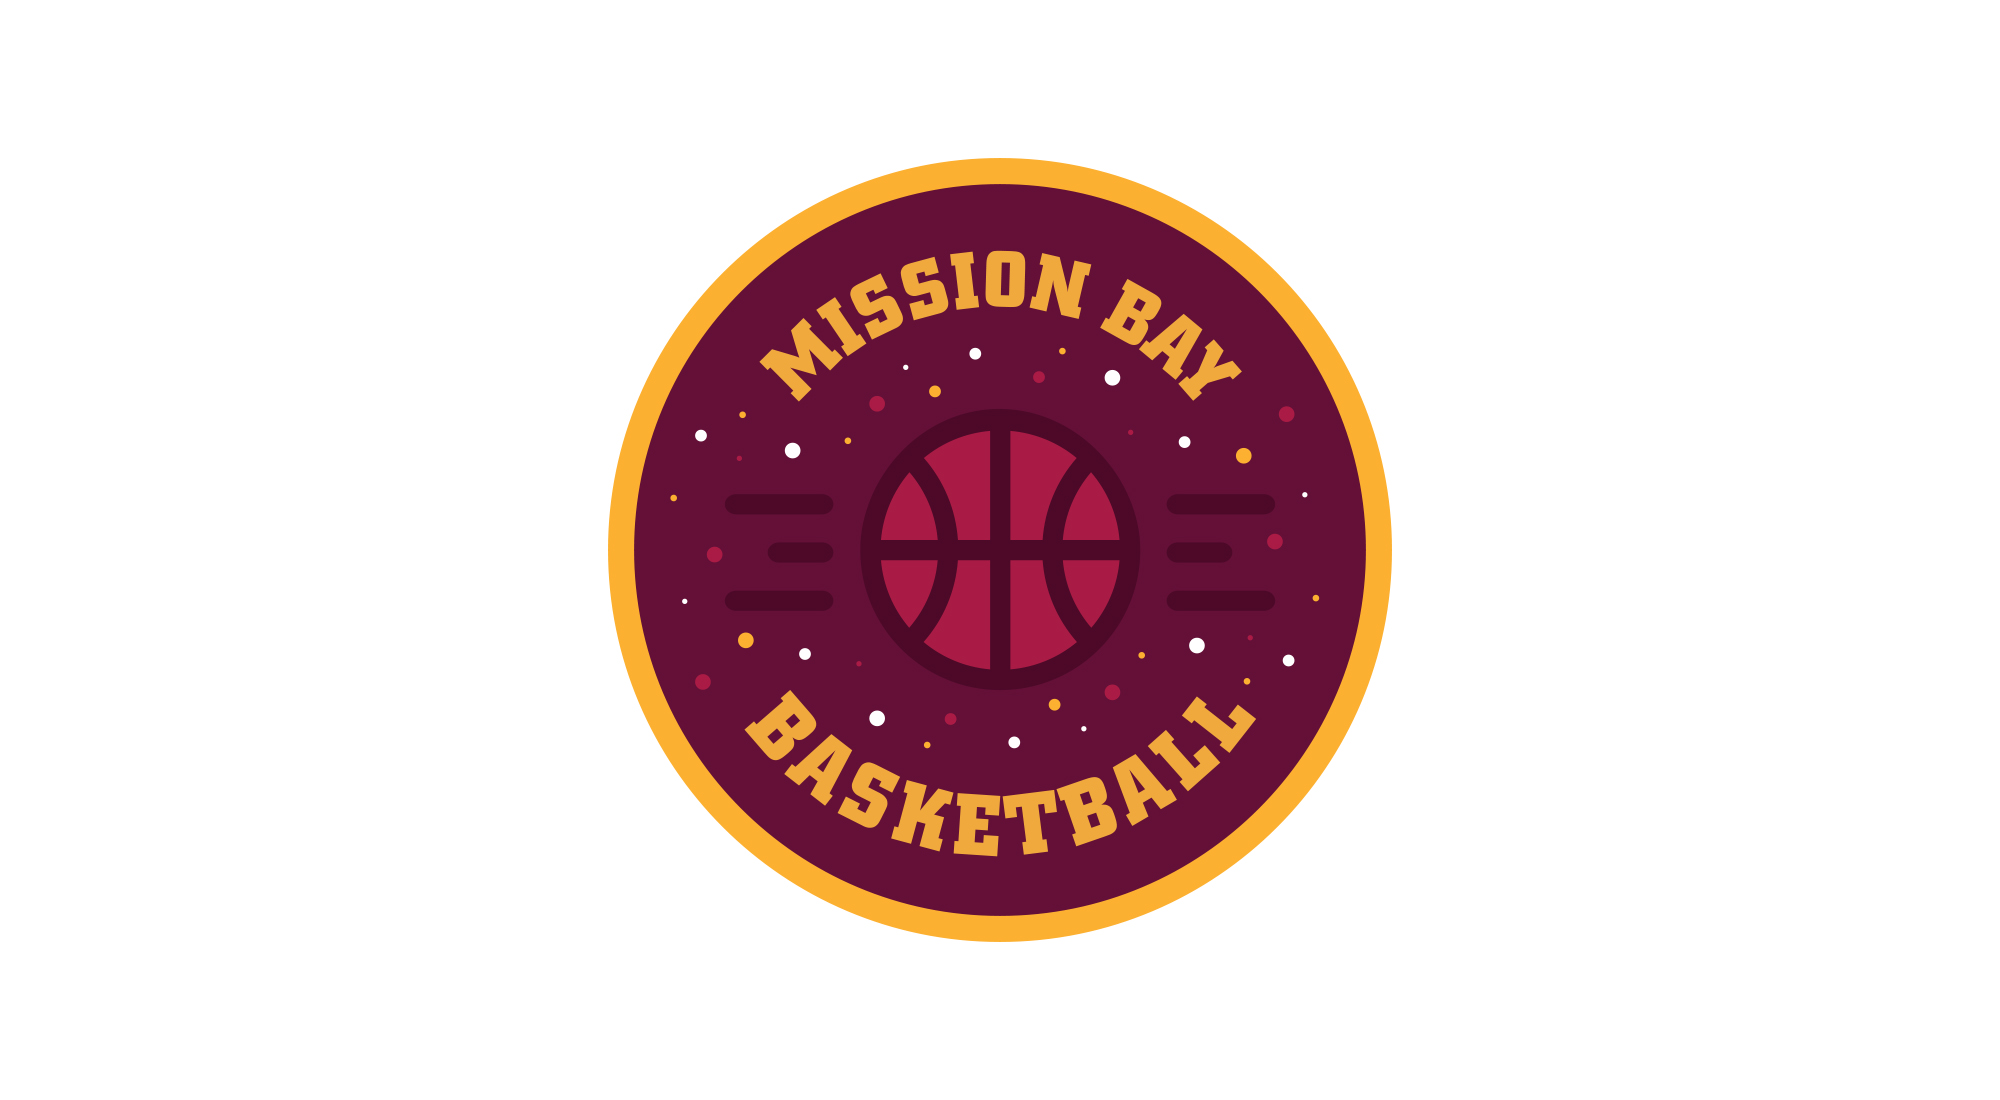 Mission Bay Basketball Logo